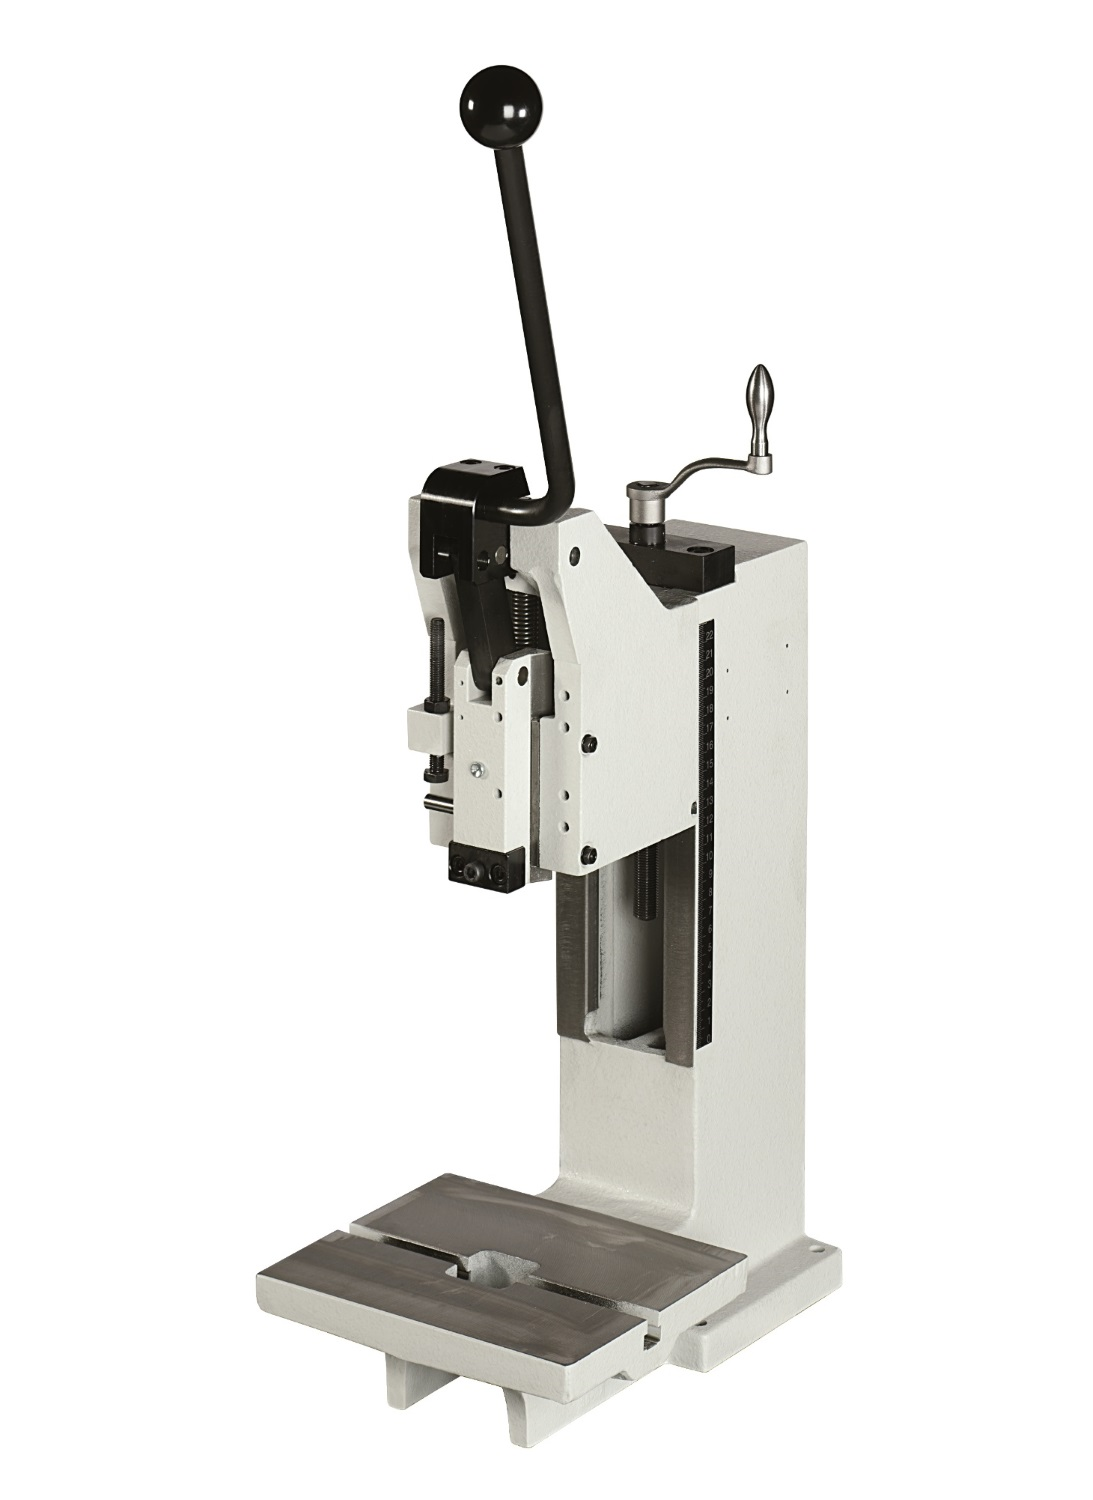 How To Trade >> Manual toggle presses | Gechter The press specialist